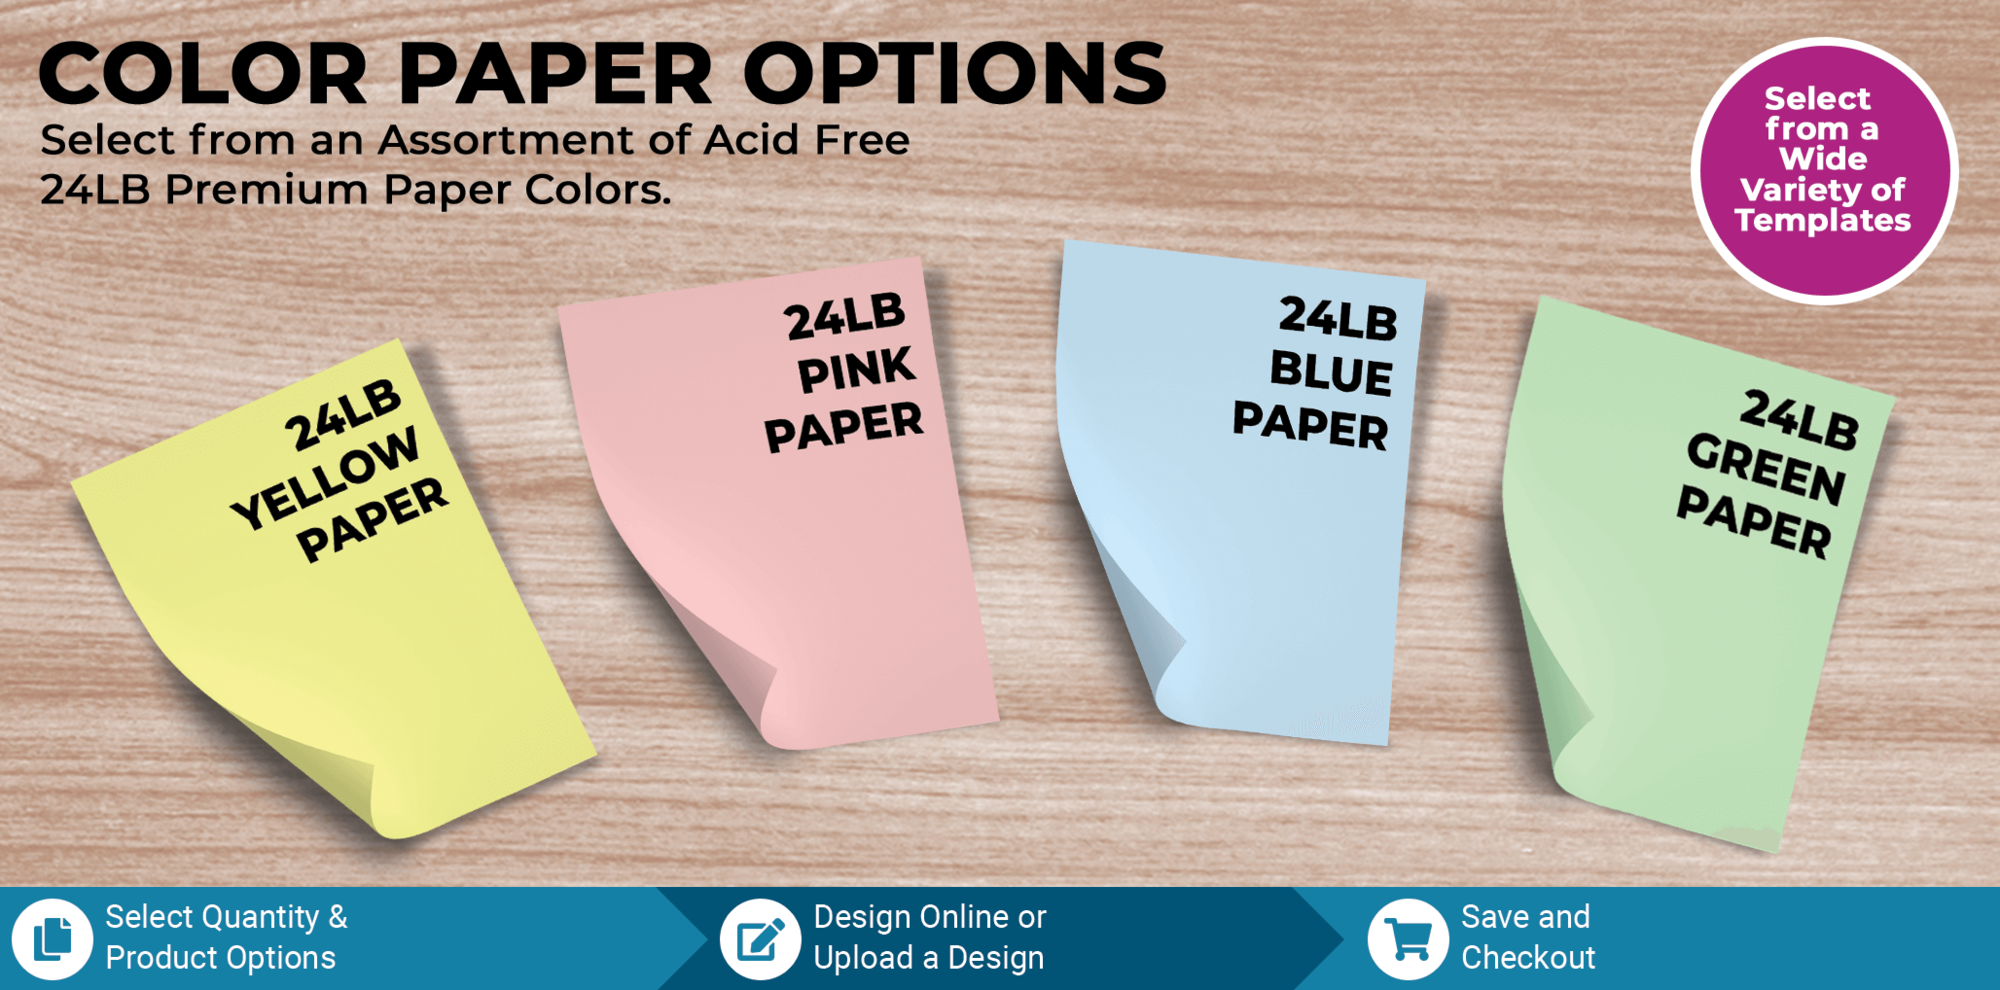 https://printpps.com/images/products_gallery_images/Custom-Sticky-Notes_Product-Page-Banner-222.png